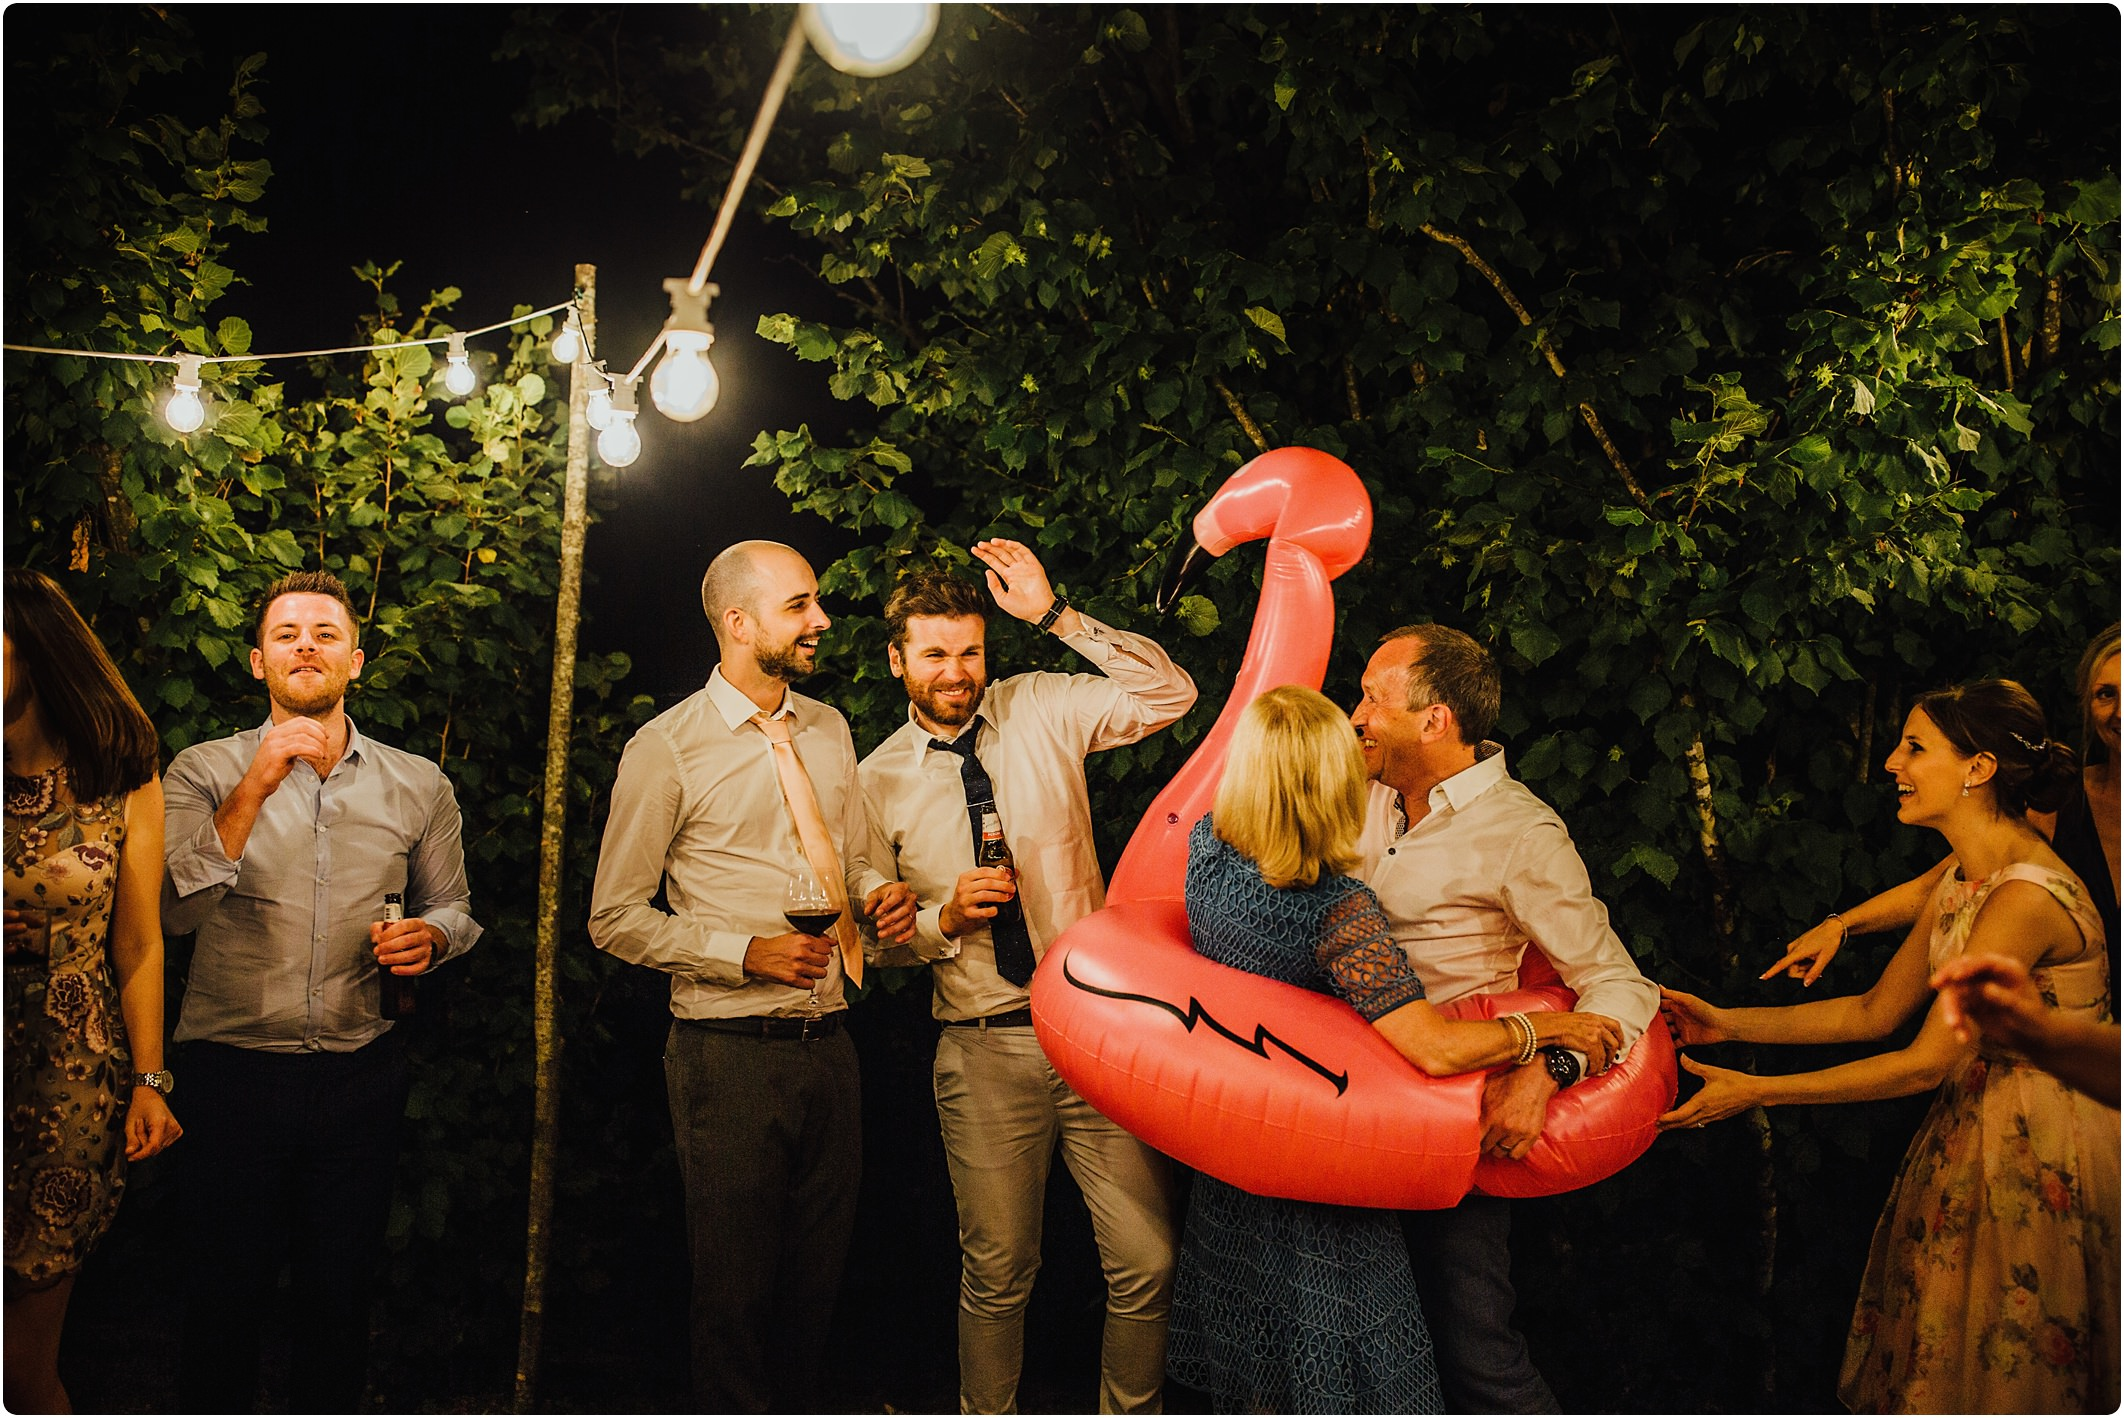 pink flamingo dancing at a villa podernovo wedding